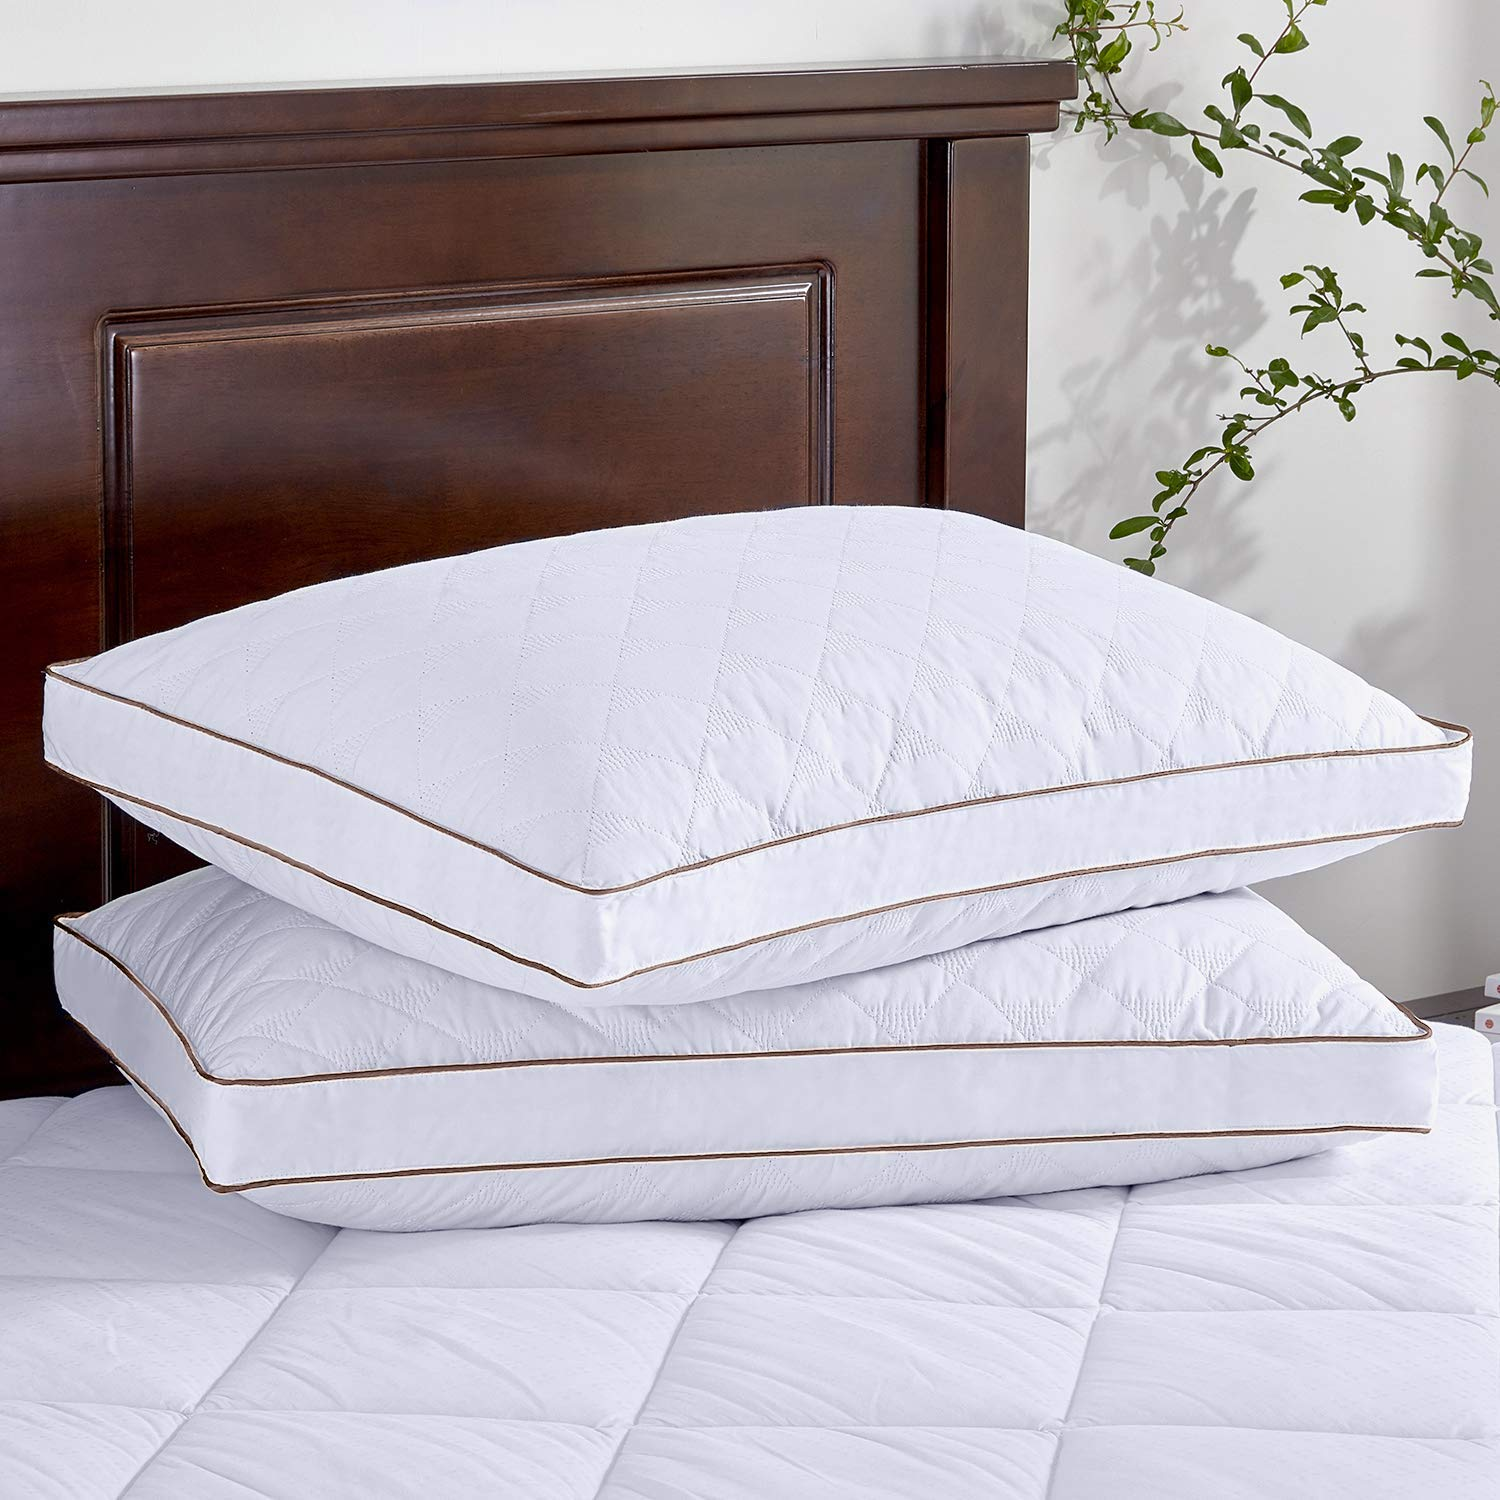 puredown® best feather pillows review by www.dailysleep.org